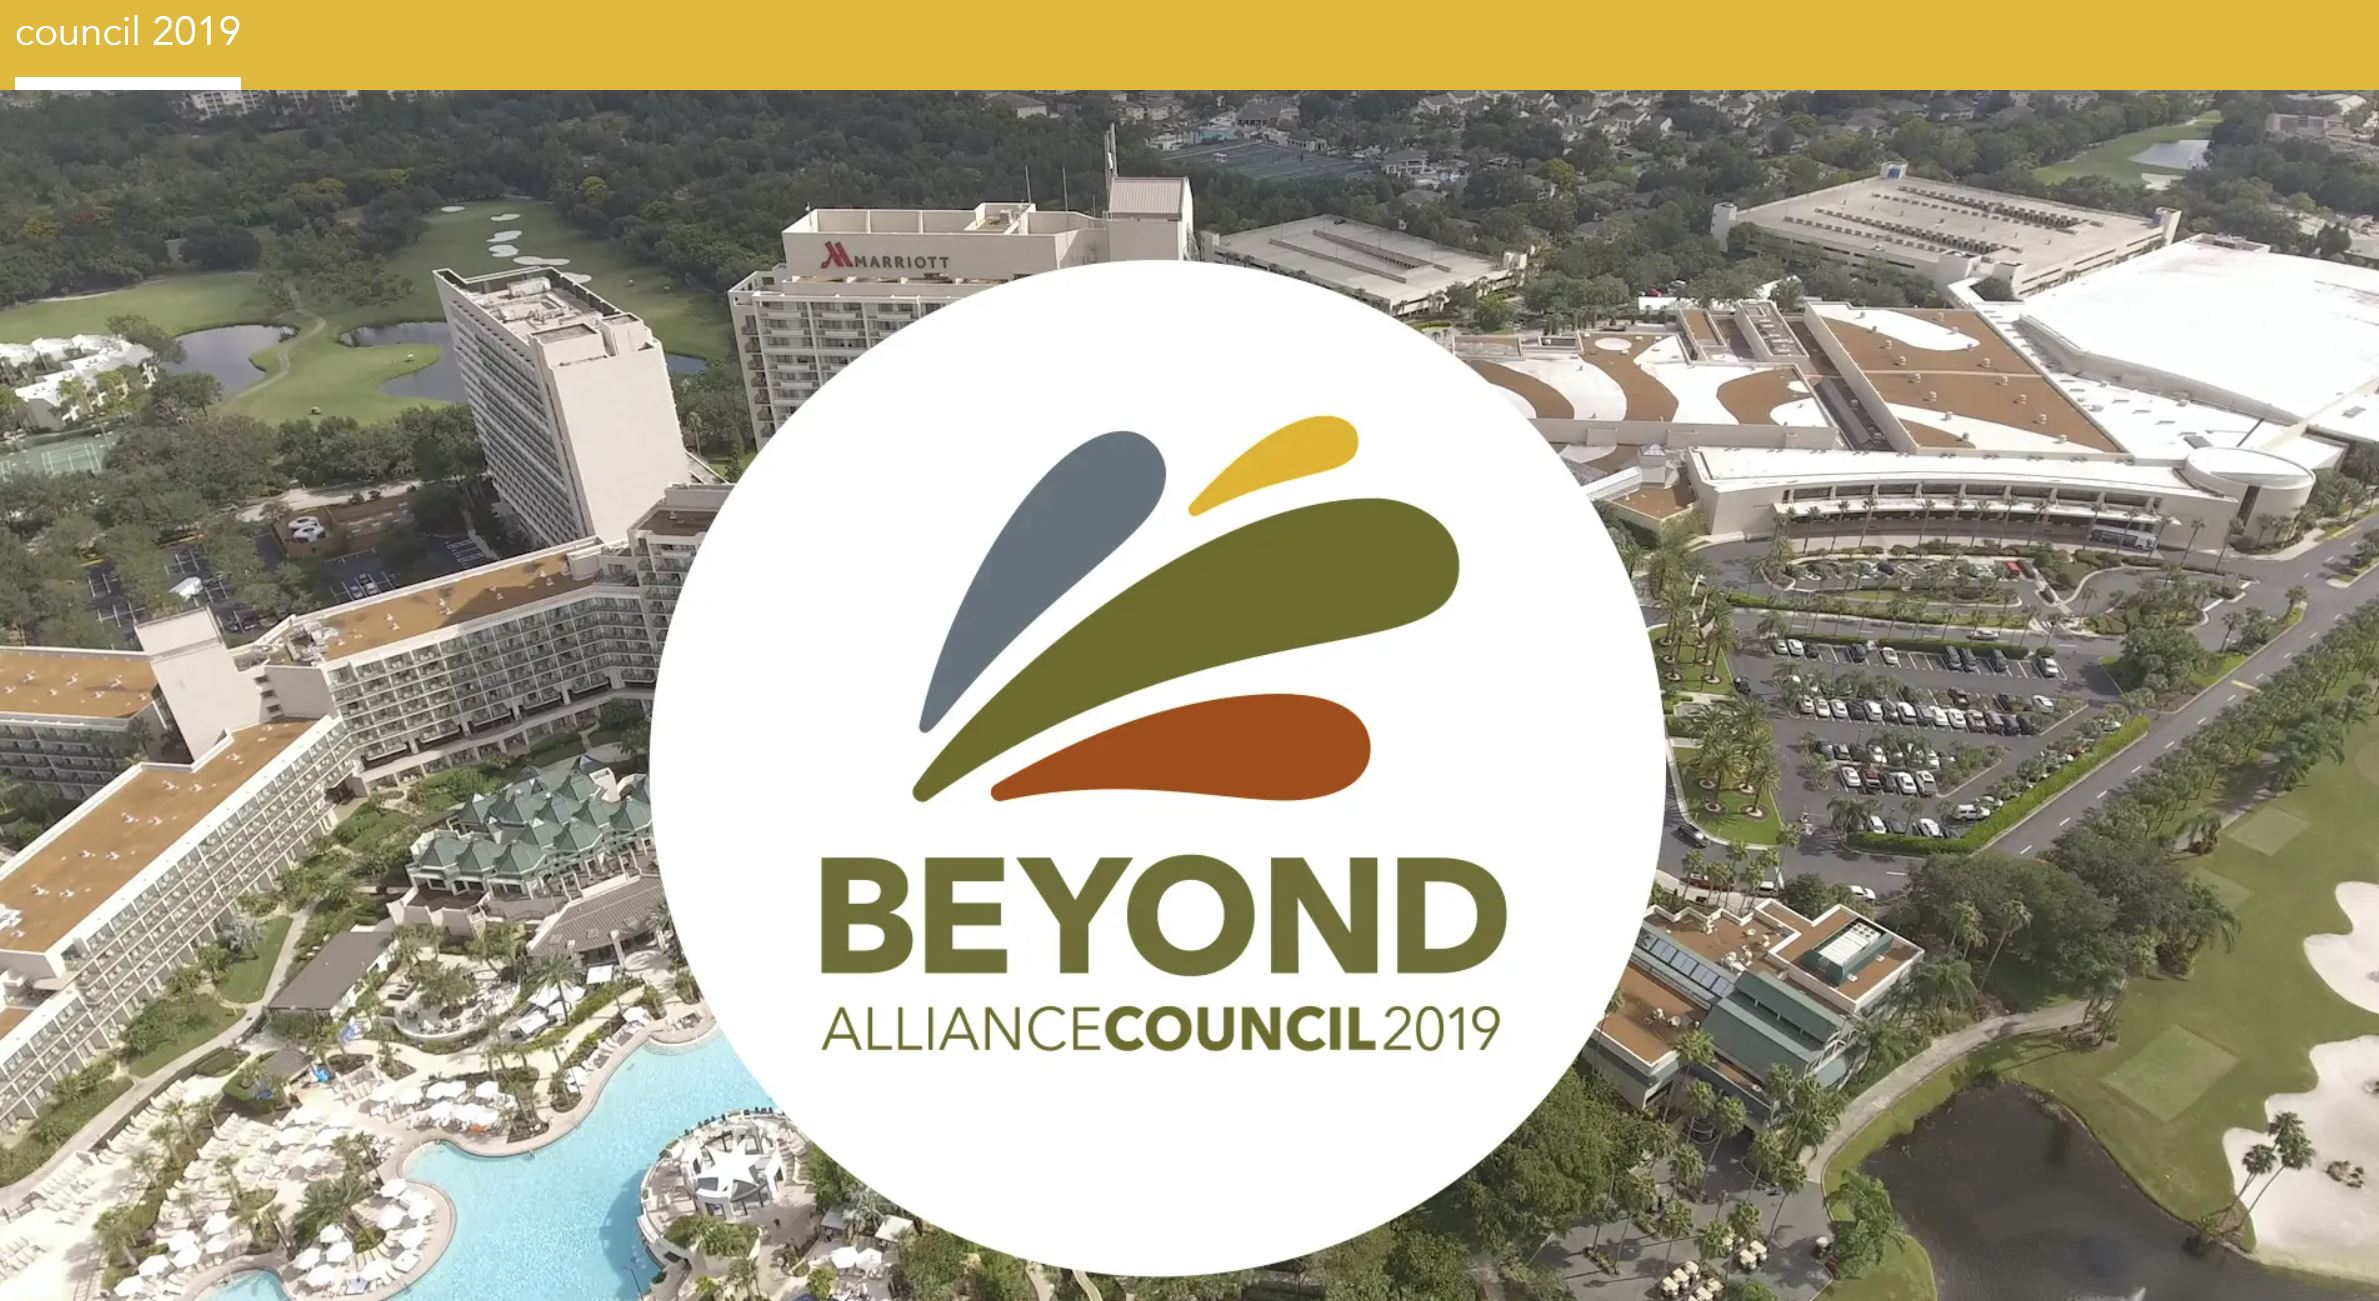 Join us at Alliance Council in Orlando, FL